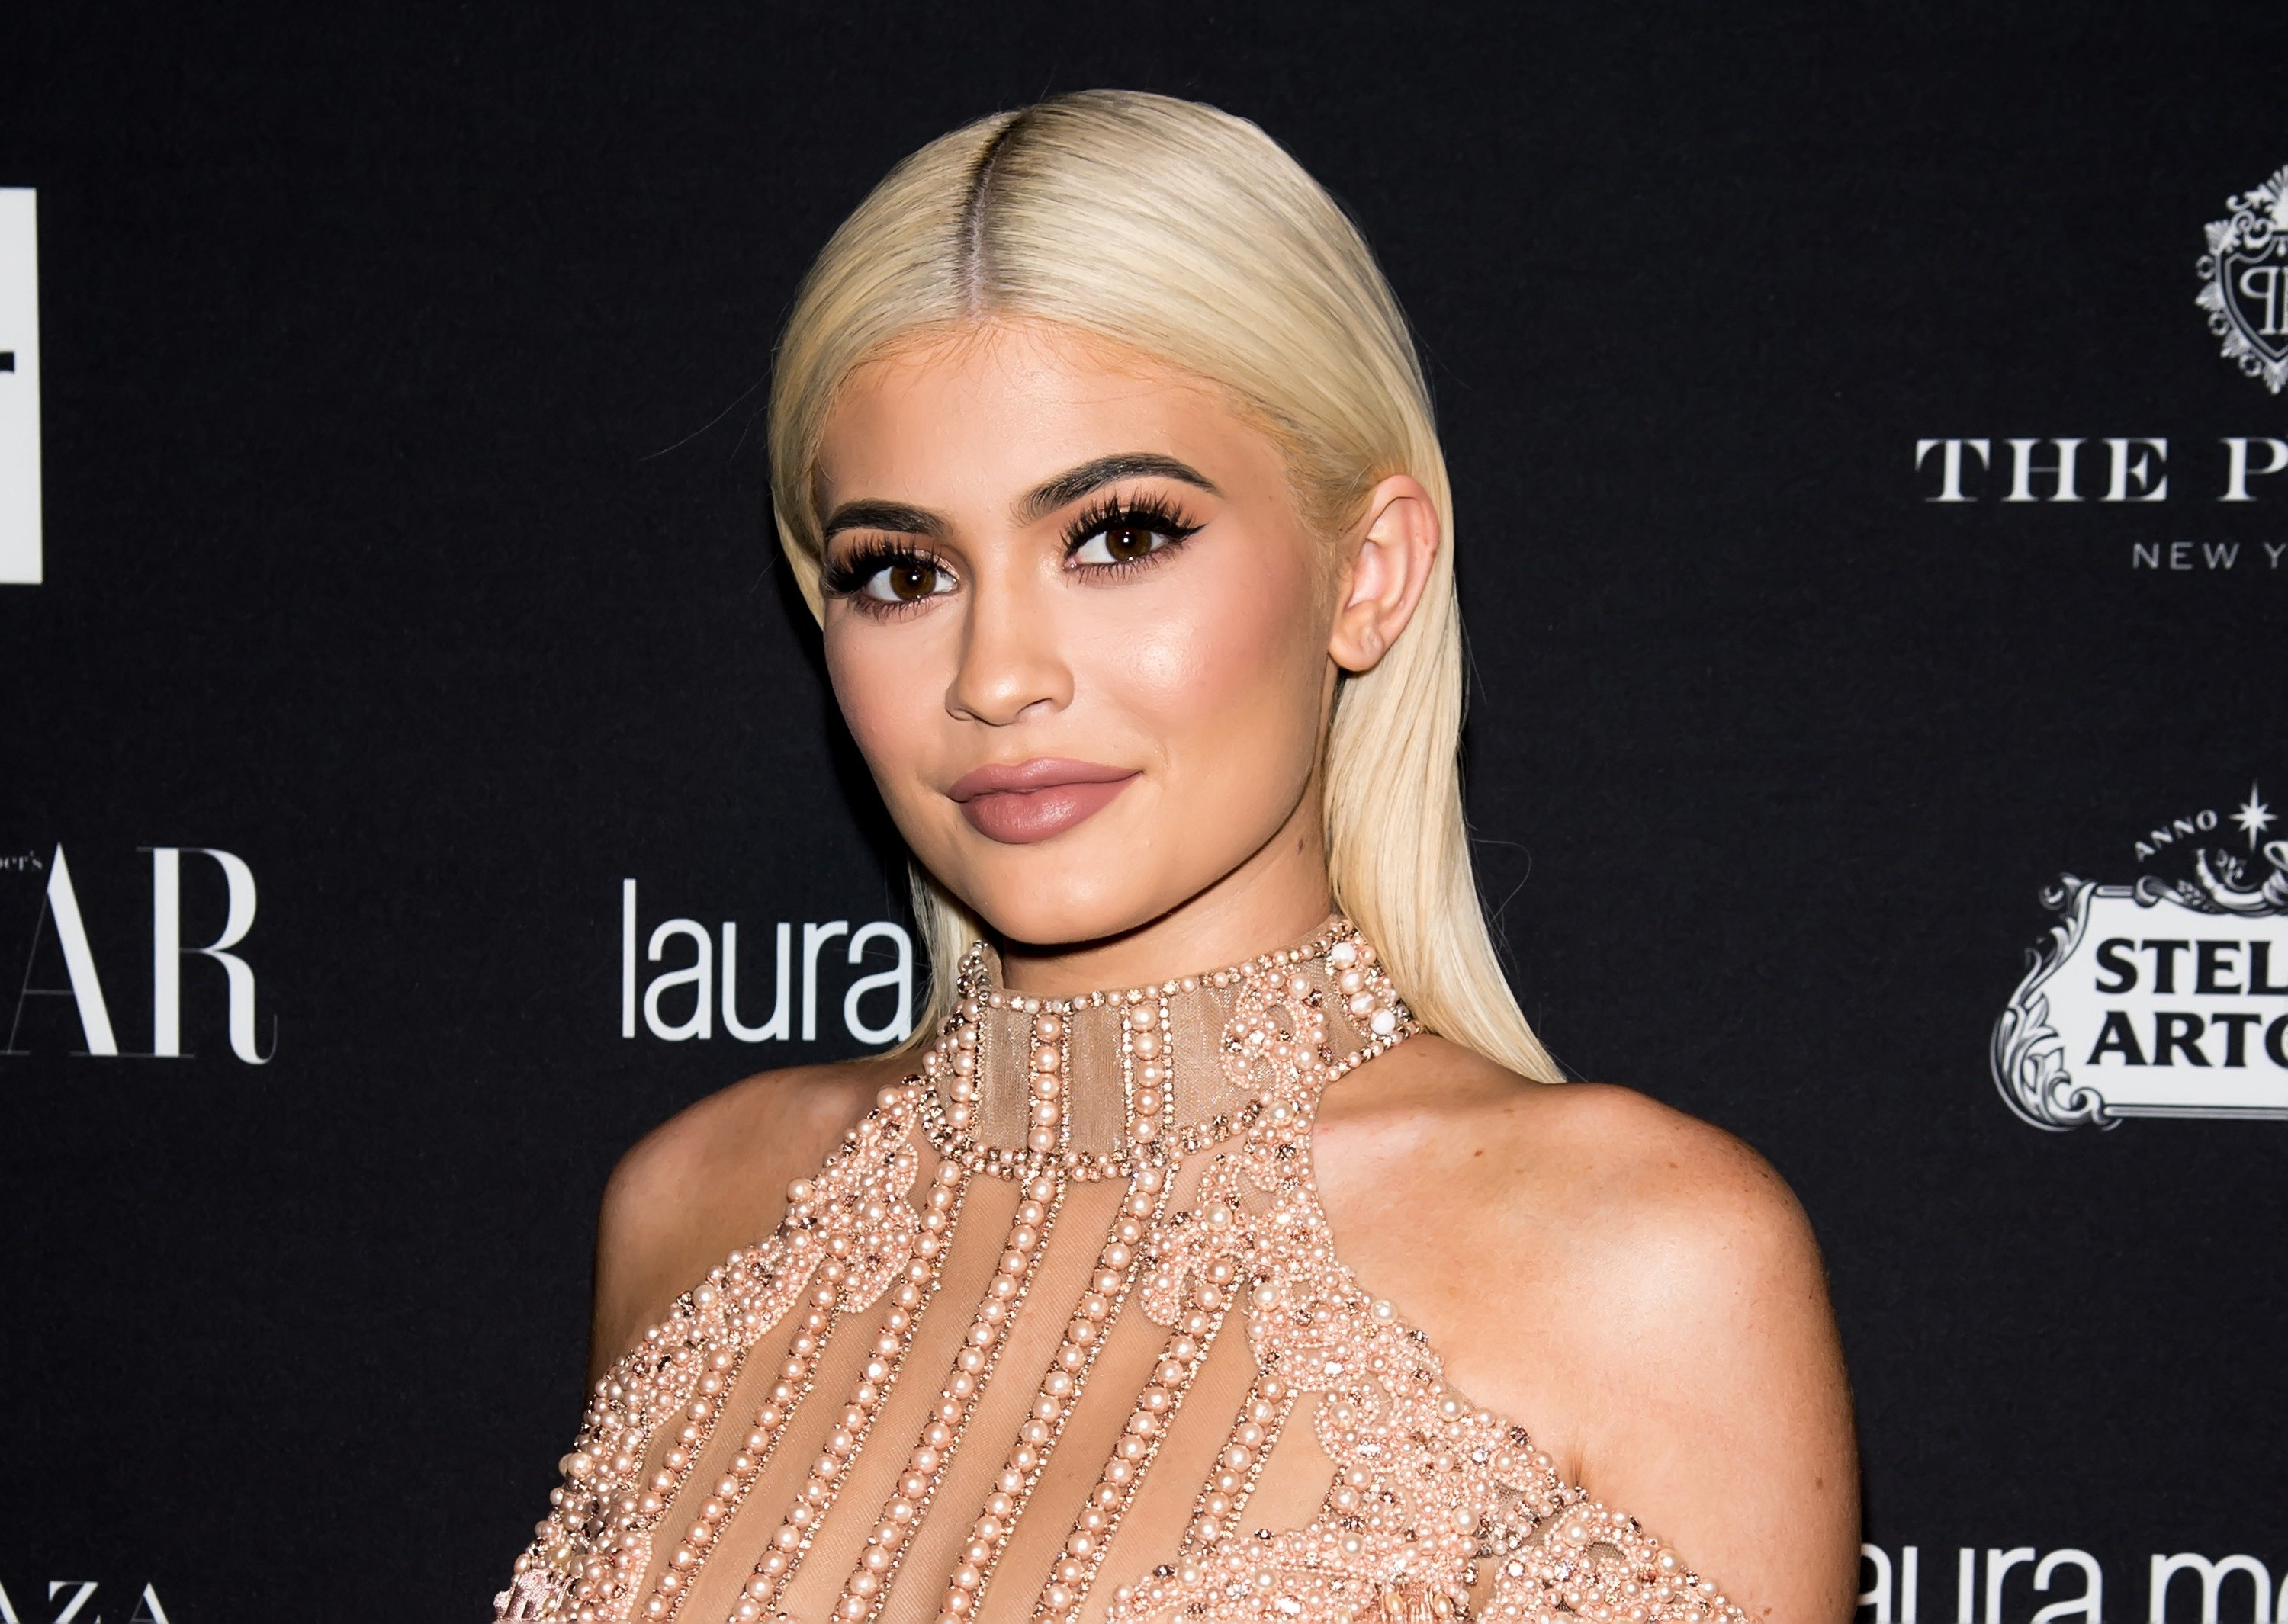 """Kylie Jenner attends Harper's Bazaar's """"ICONS By Carine Roitfeld"""" at The Plaza Hotel on September 9, 2016 in New York City. 